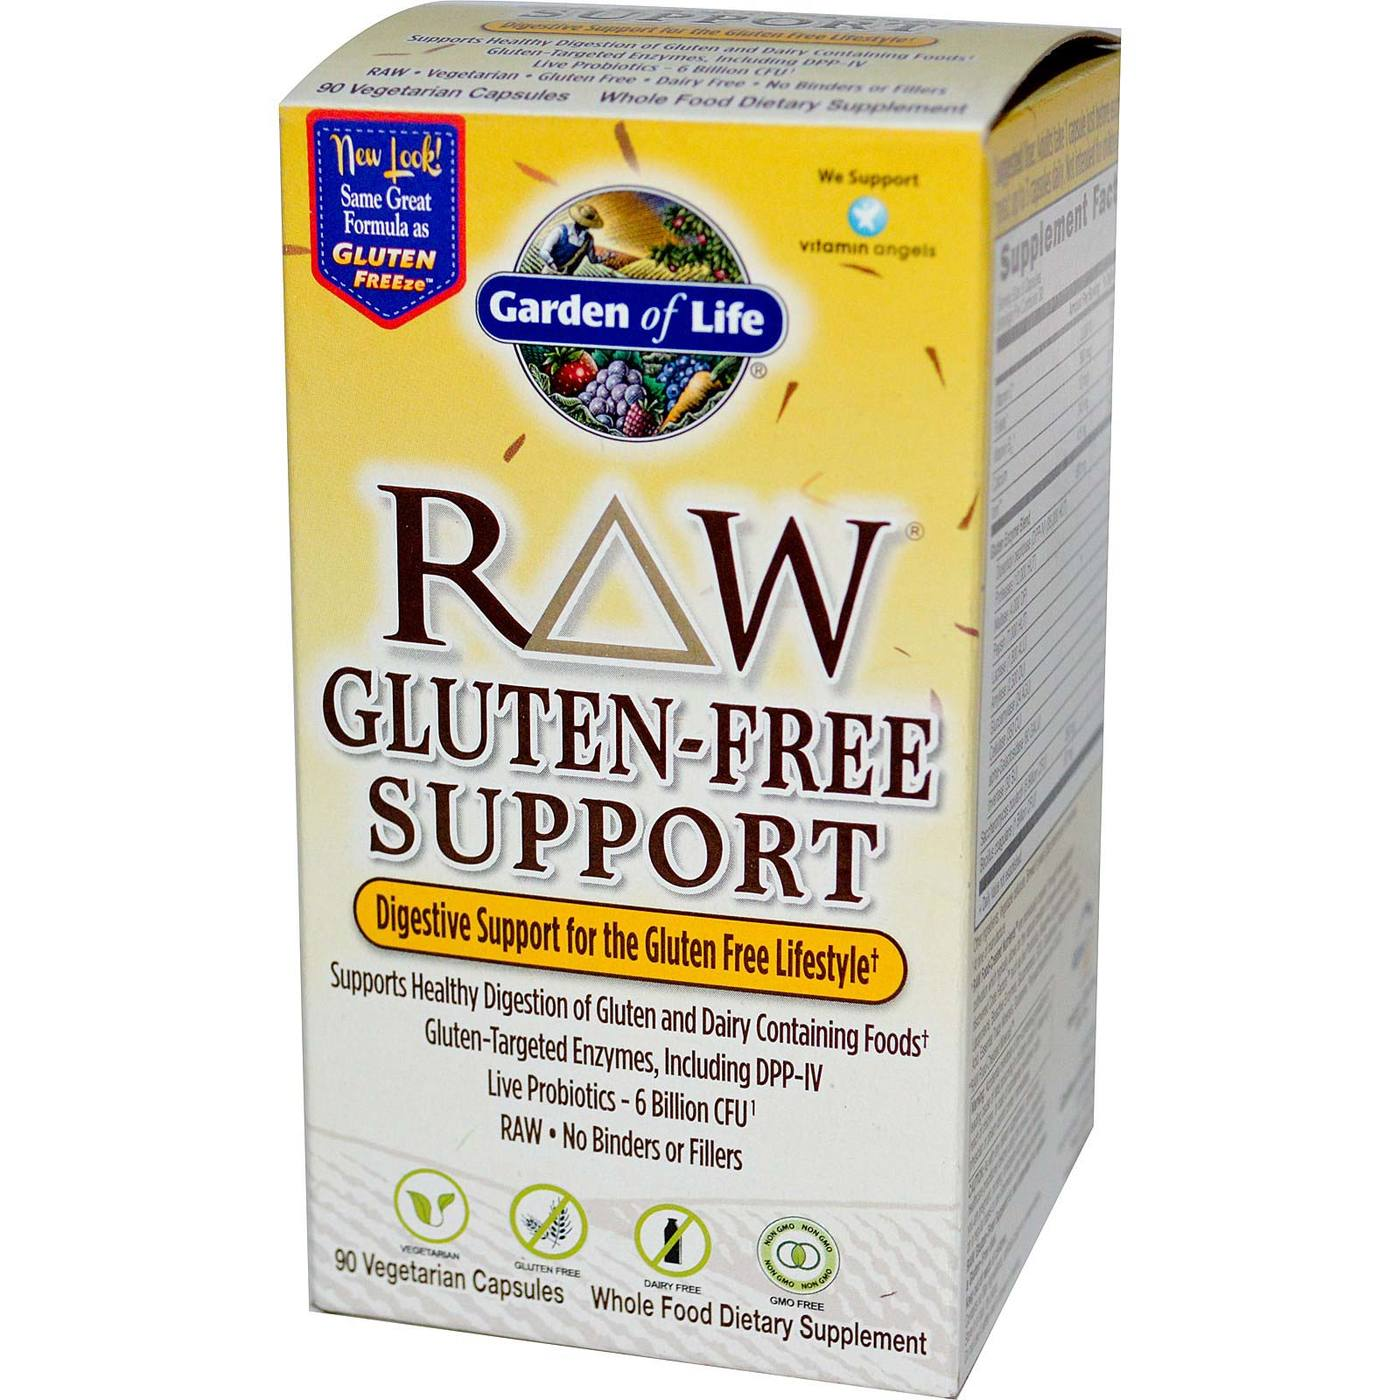 Garden of life raw gluten free support 90 vcaps for Garden of life raw cleanse reviews